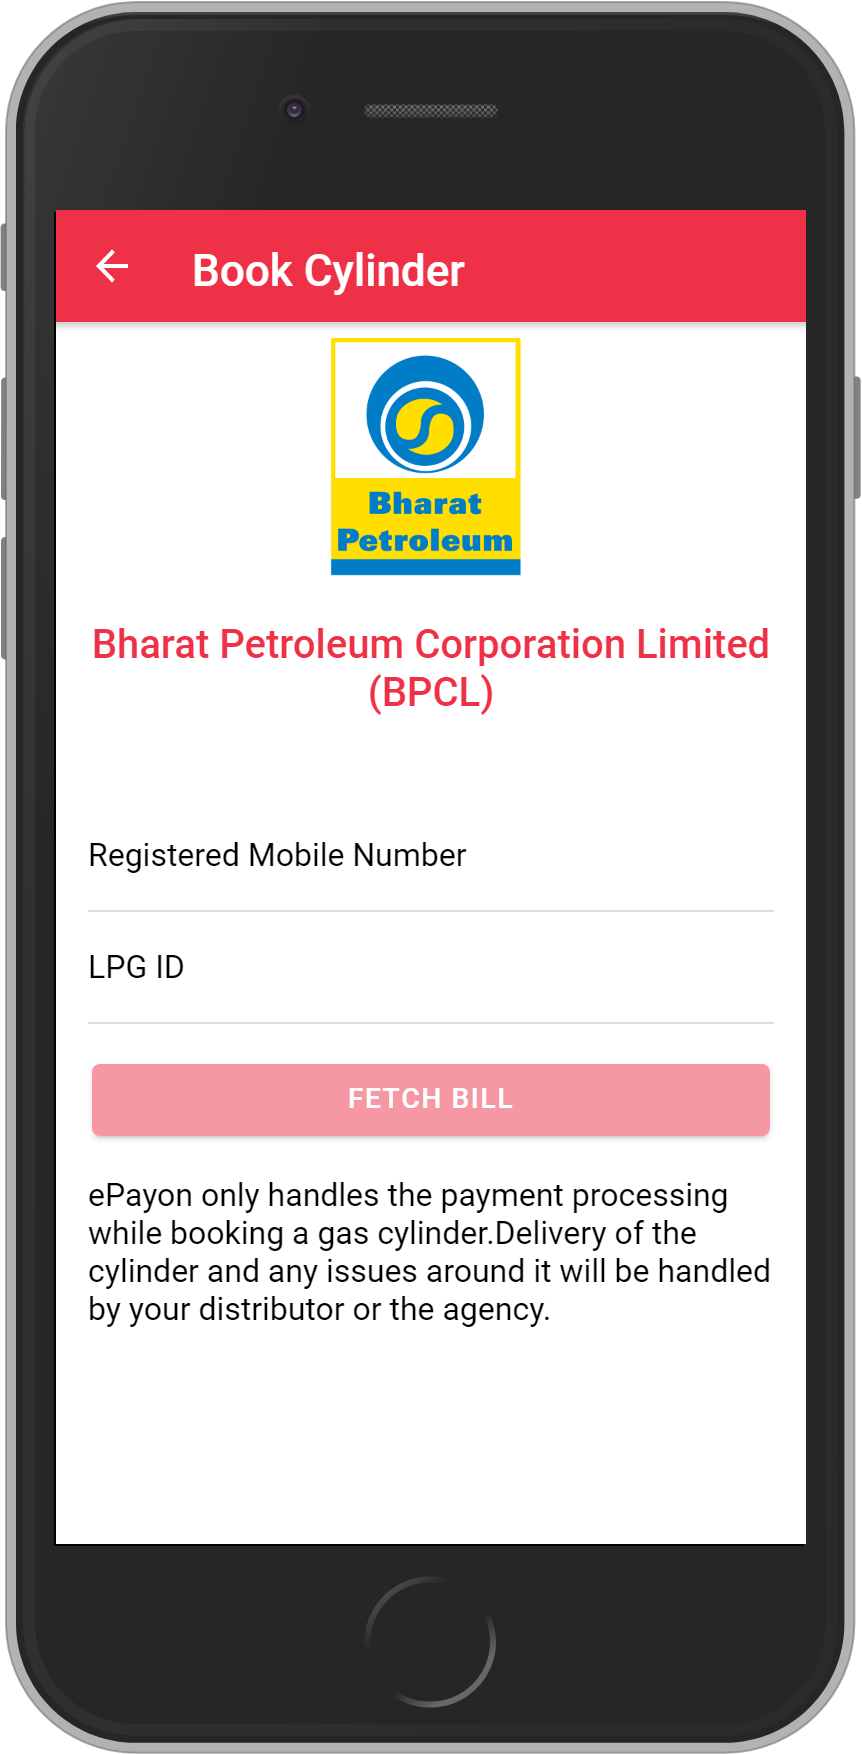 Get Rs. 10 on First cylinder booking(Every month) and than UNLIMITED <b>0.1%</b> CASHBACK on Bharat Petroleum Corporation Limited (BPCL)  Cylinder booking.